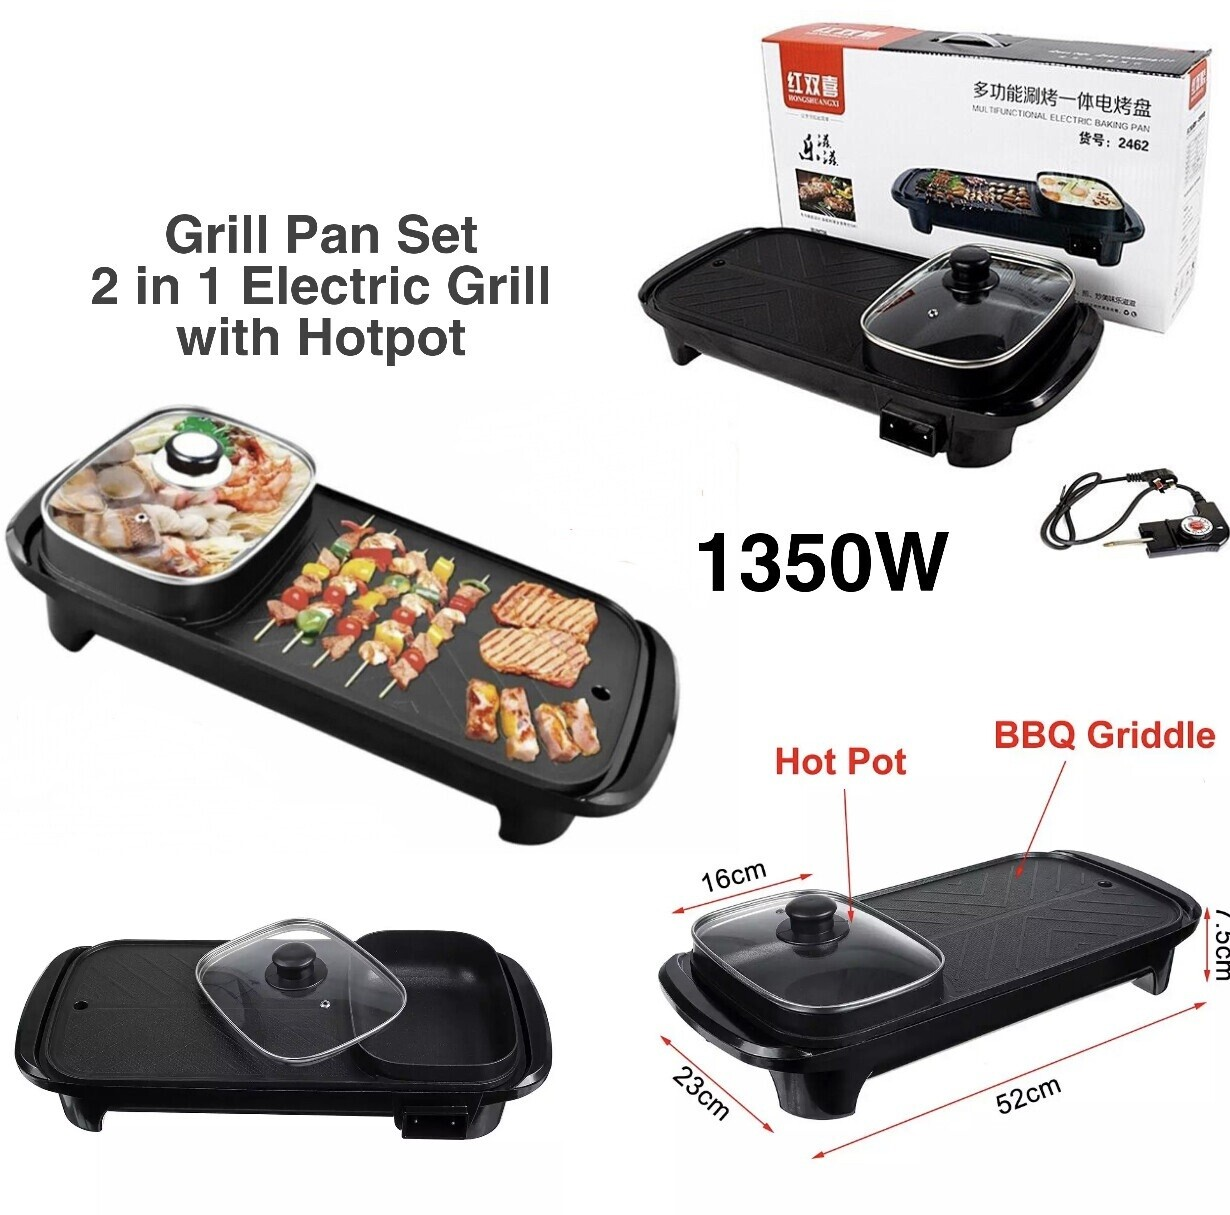 2 in 1 Electric Grill